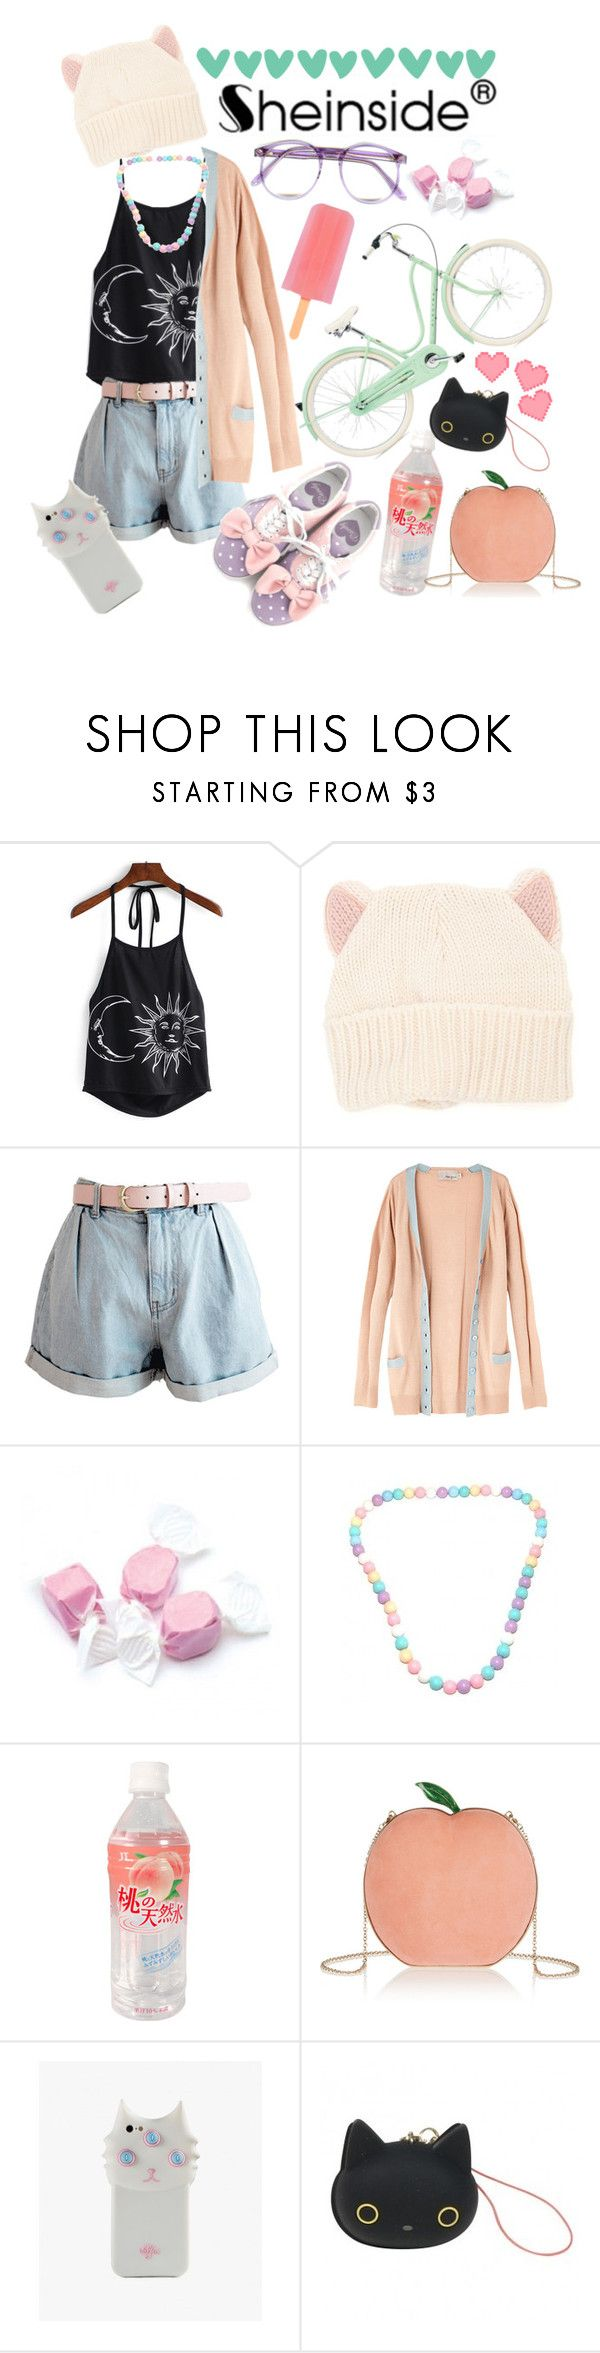 """""""Ho but darling, we may be cute but we all have a darker side"""" by neon-life ❤ liked on Polyvore featuring With Love From CA, Warehouse, Maria Garcia, Salt Water Sandals, Market, Charlotte Olympia, Valfré, cute, adorable and contestentry"""